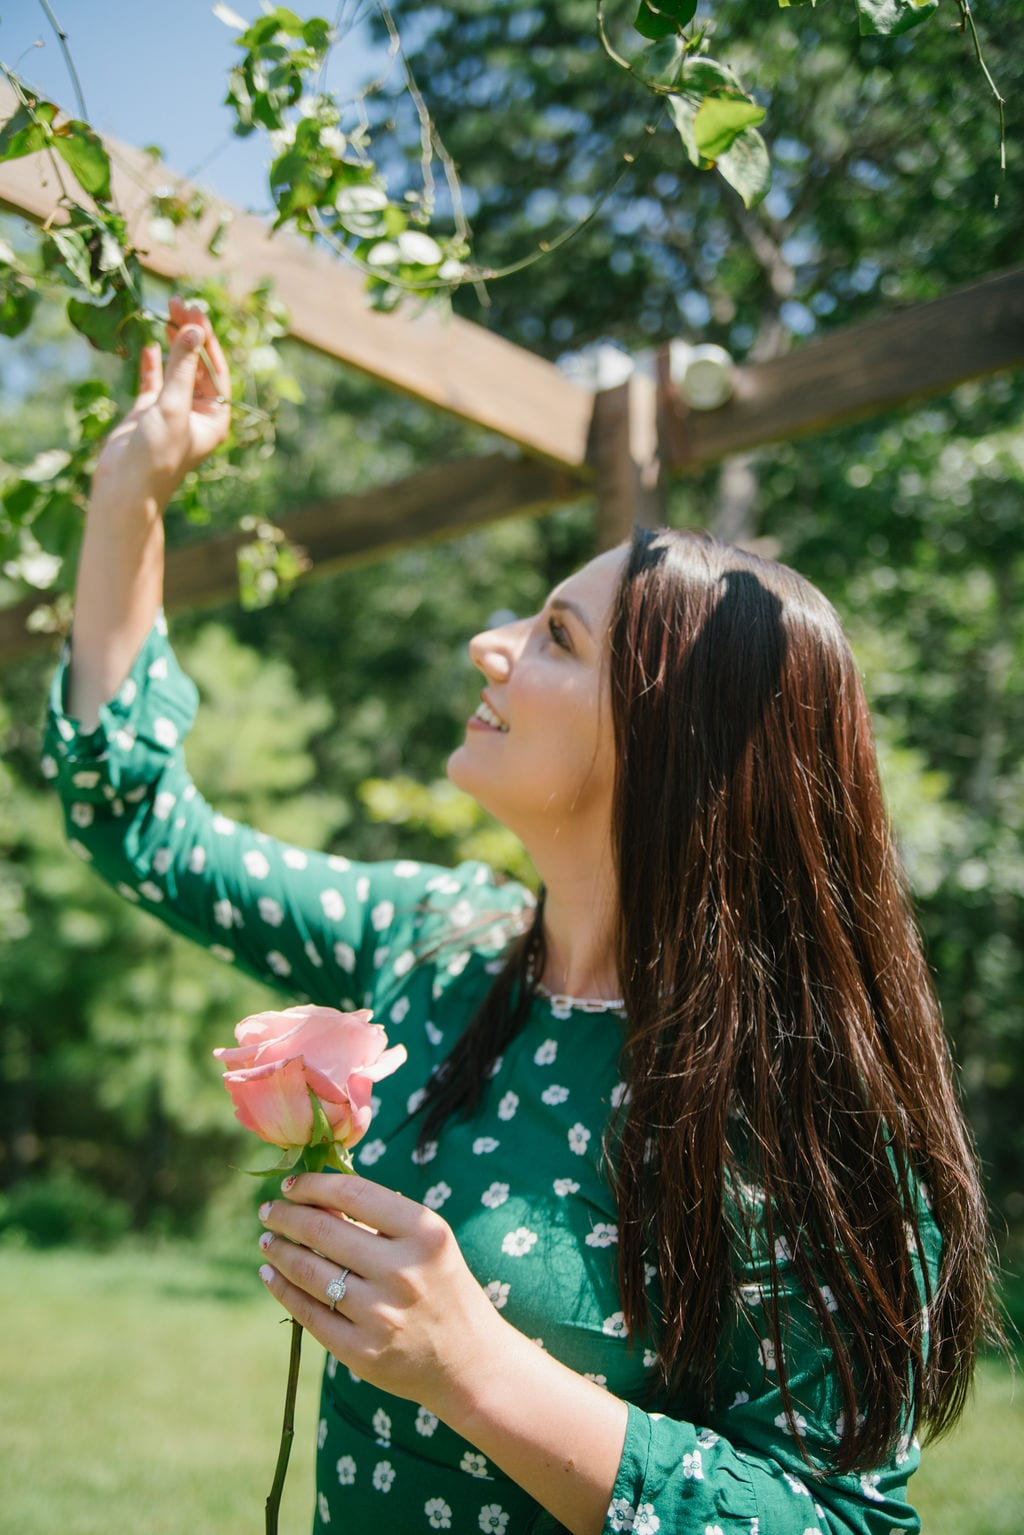 This is a photo of me wearing a green dress with white polka dots, while reaching for some roses in a bush up above, in Southhampton New York.